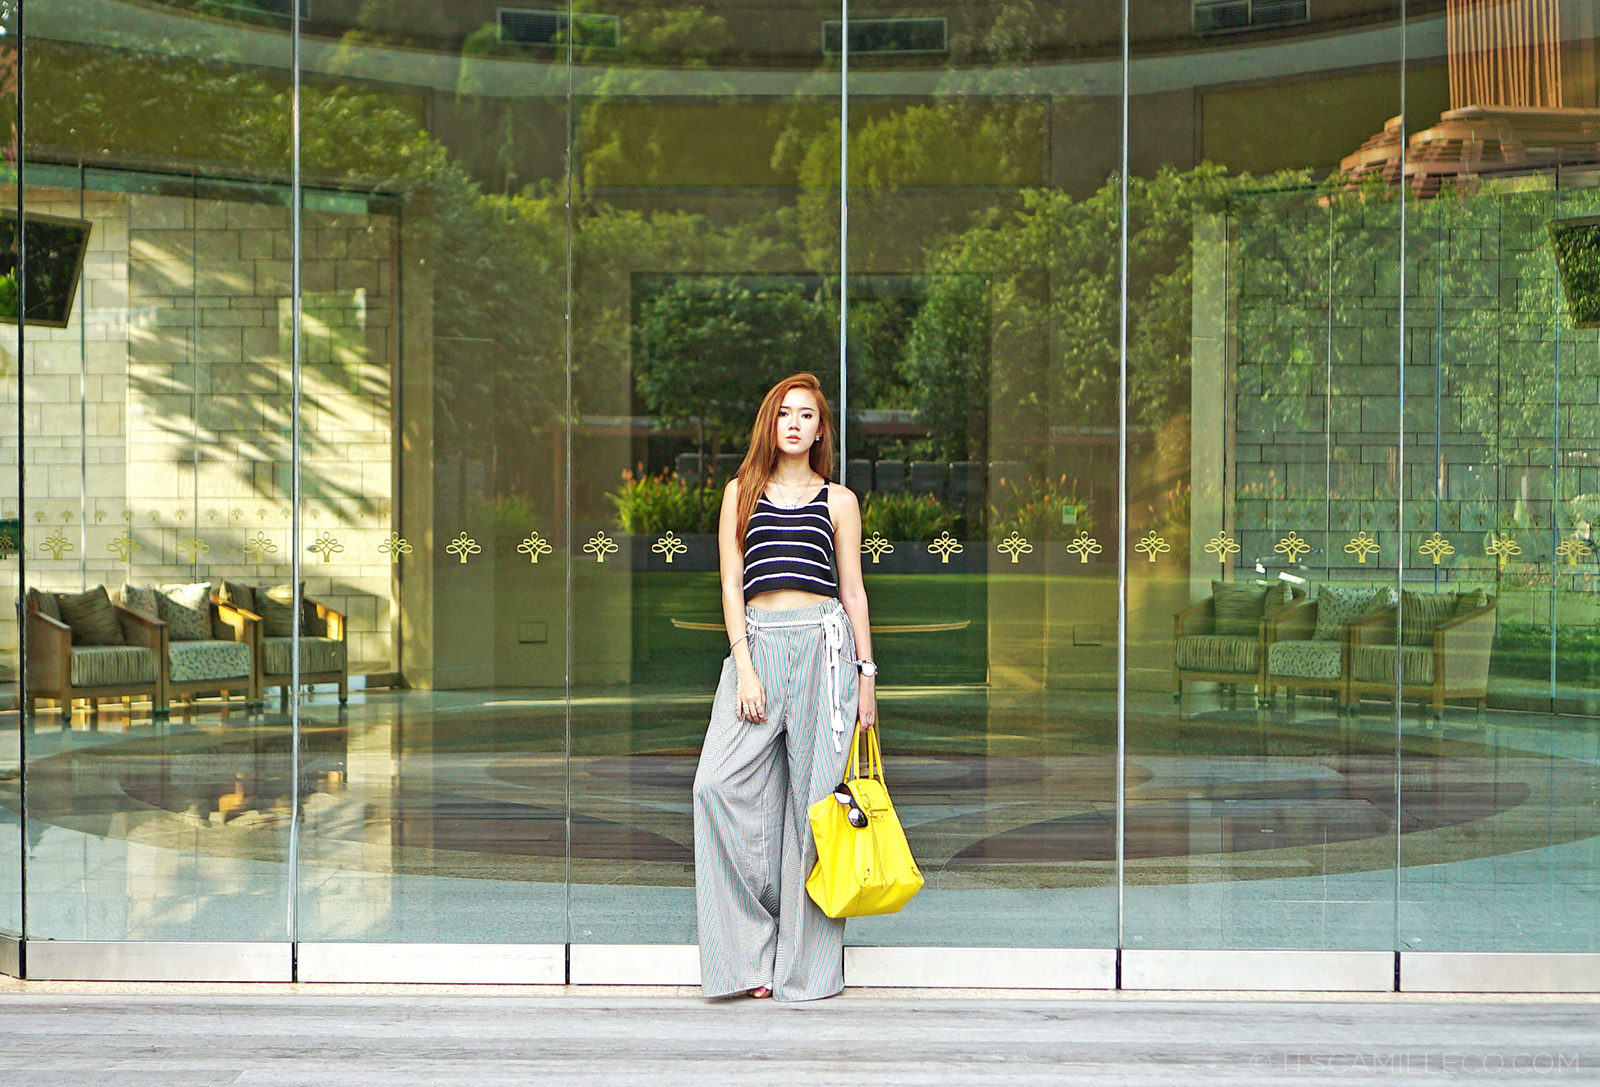 La La Land top, Zara trousers, Balenciaga Papier bag, Hachill sunglasses | www.itscamilleco.com